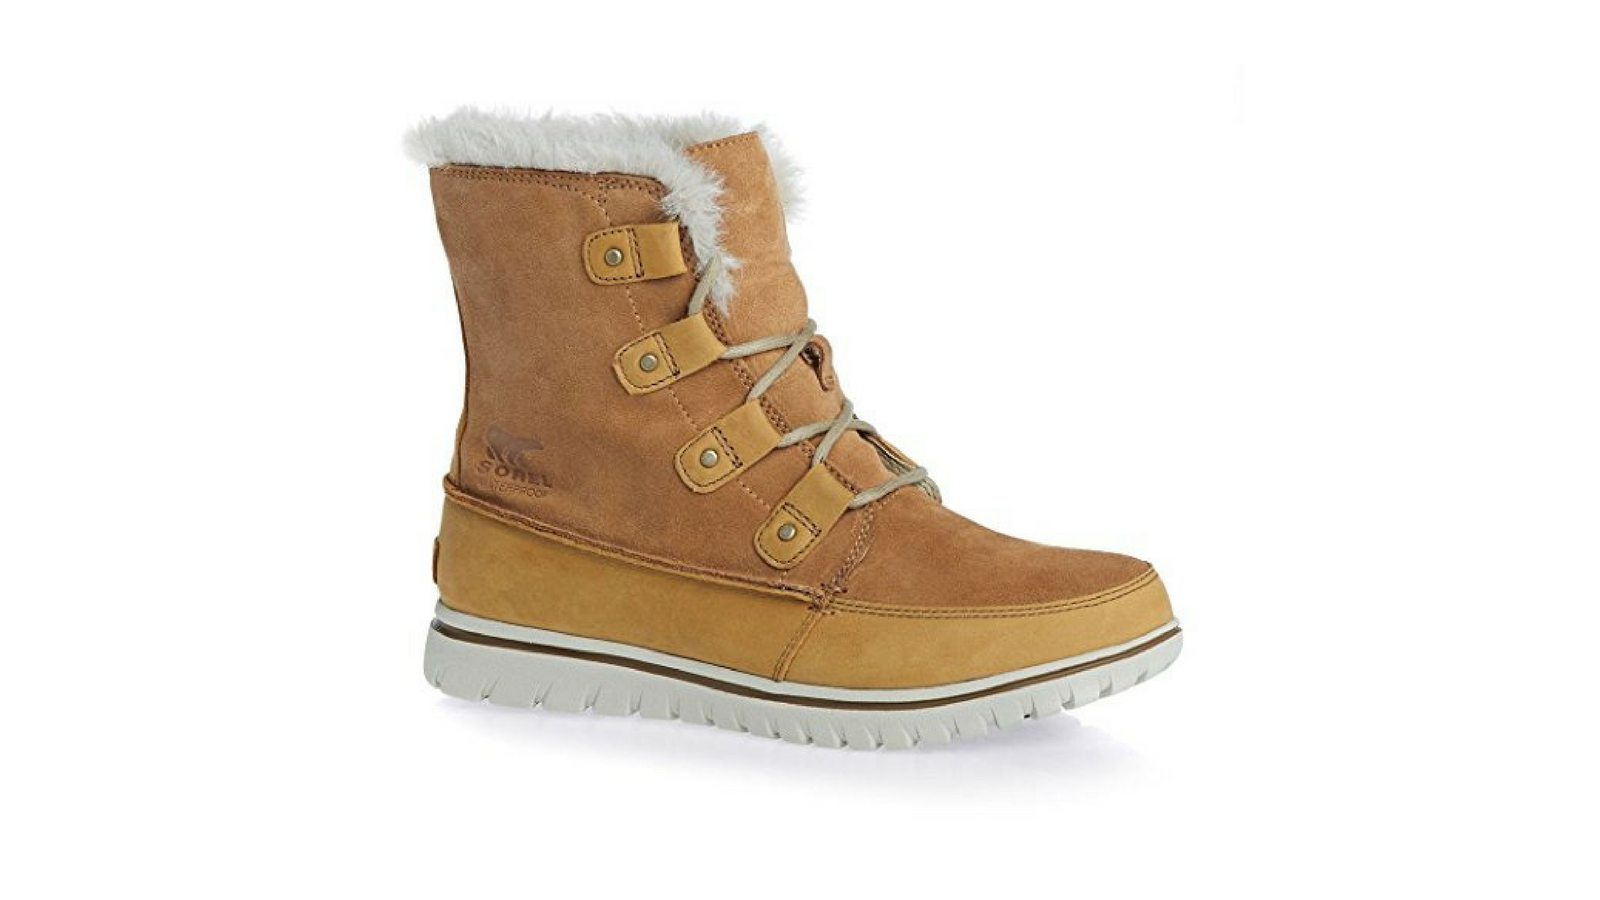 6df8db79d20c Sorel s much-loved snow boots are a safe bet for any winter adventures.  Designed in Canada